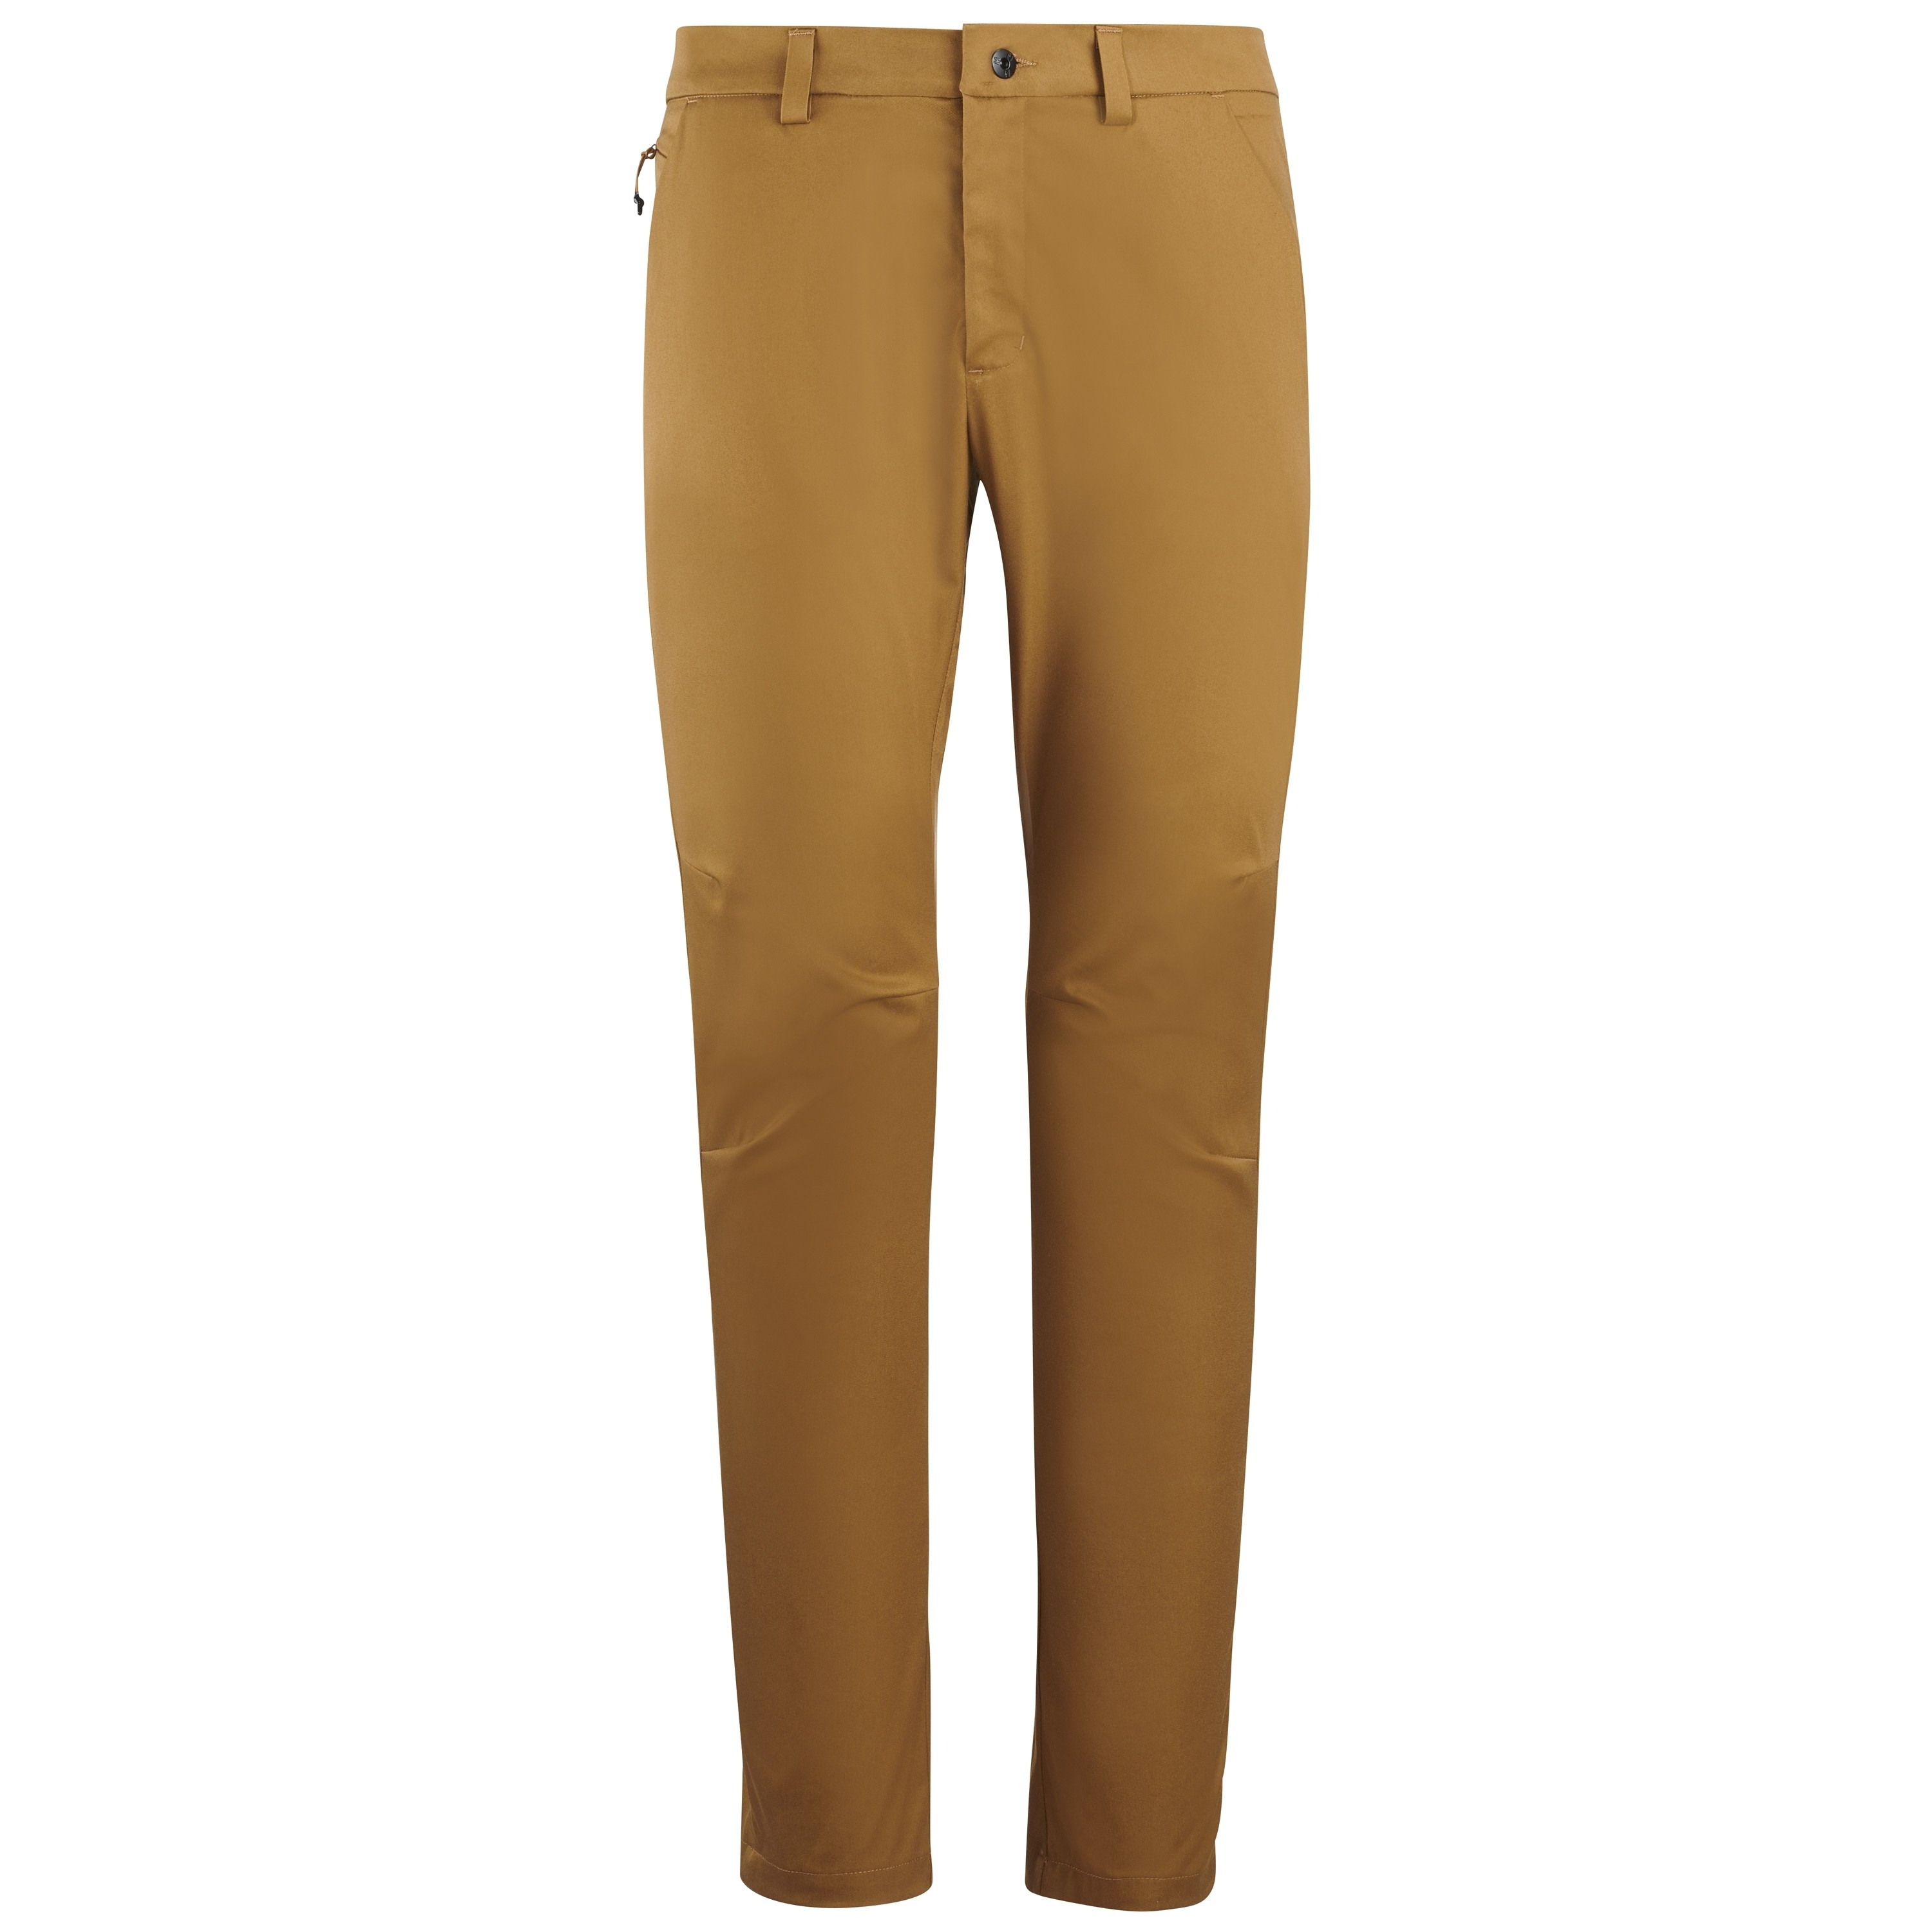 TRILOGY SIGNATURE CHINO PT M